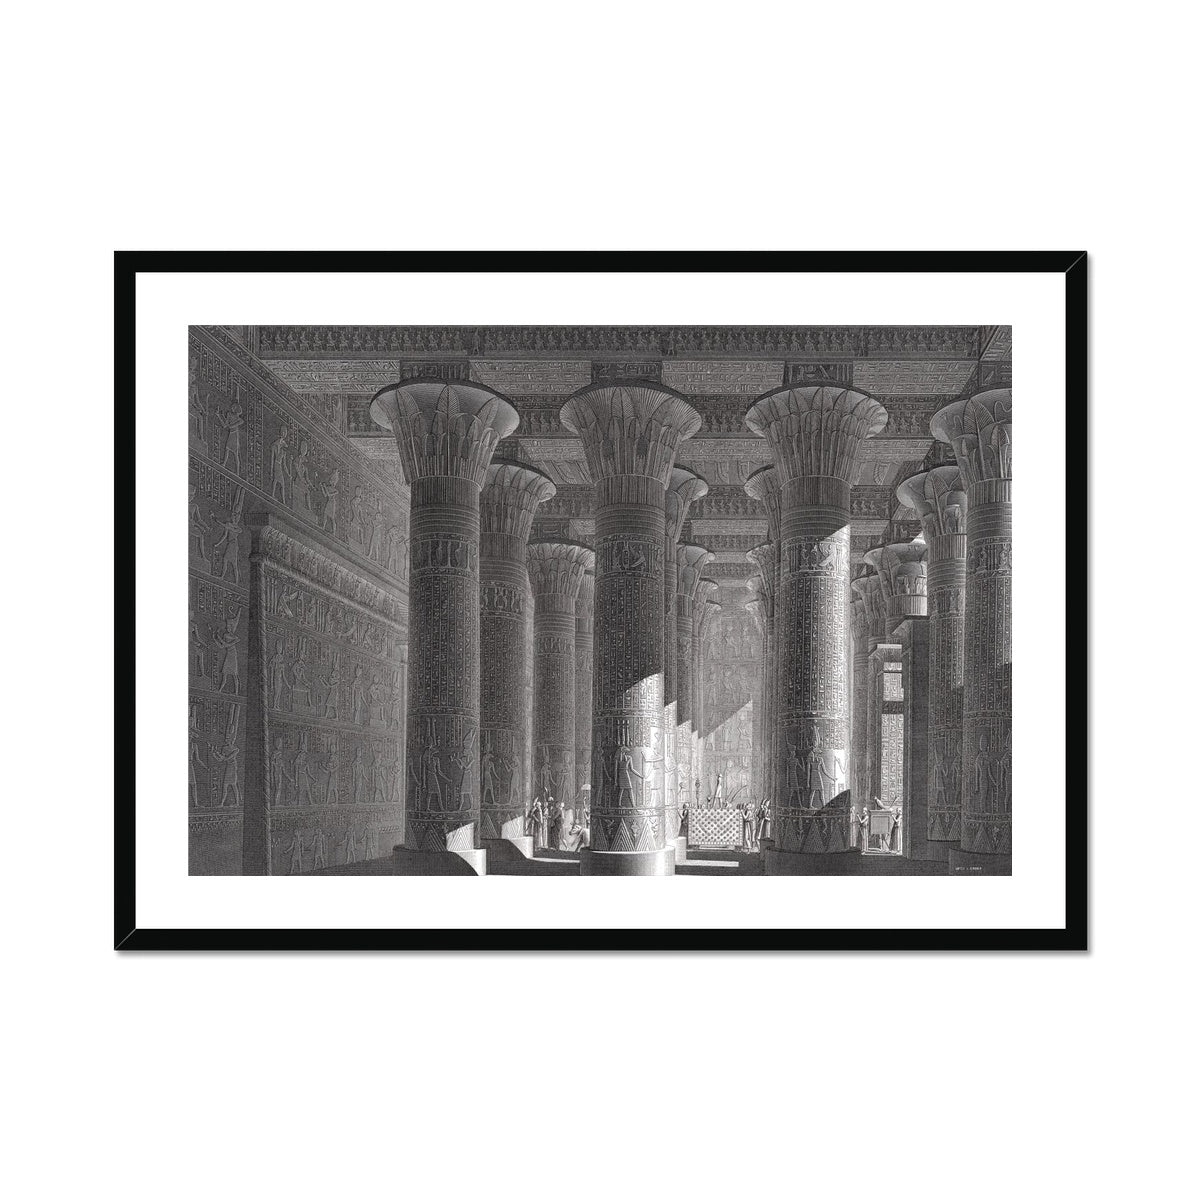 Temple of Khnum Portico Interior - Esna Egypt -  Framed & Mounted Print